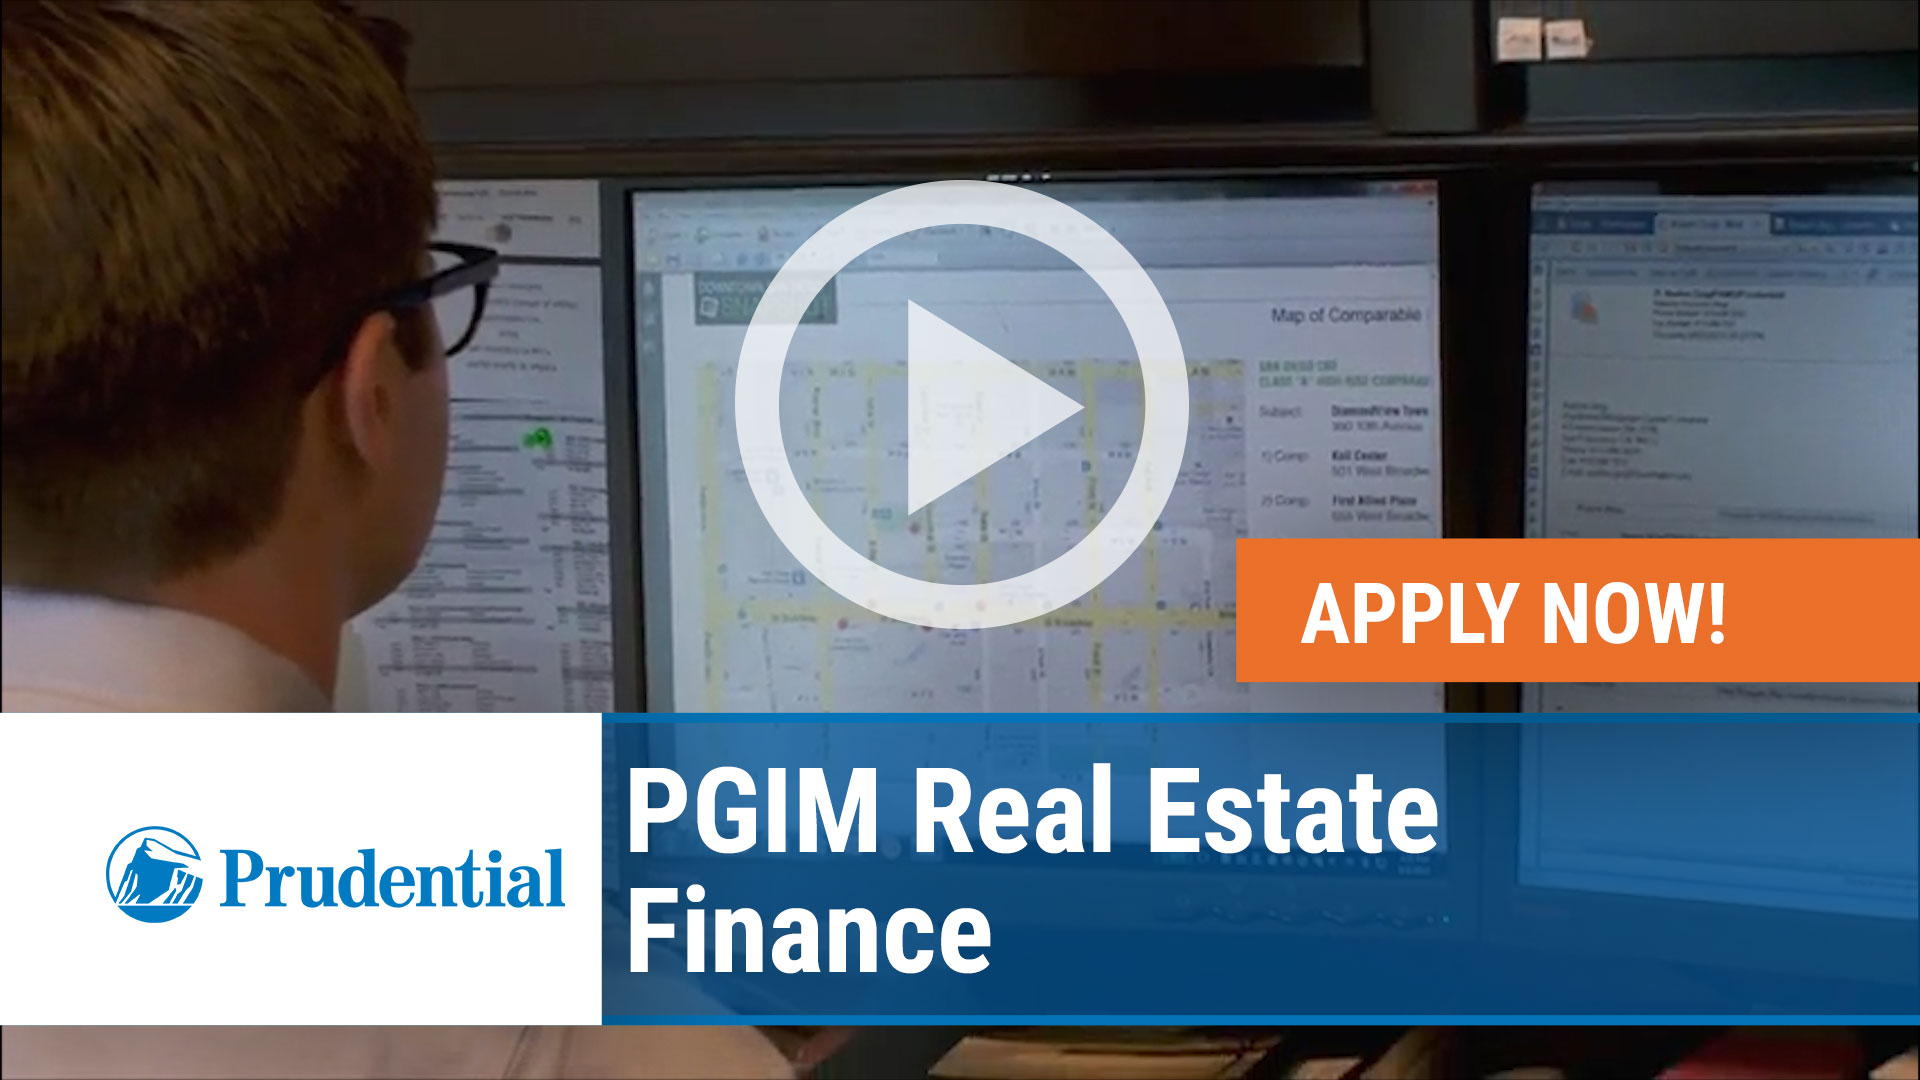 Watch our careers video for available job opening PGIM Real Estate Finance in San Francisco, CA